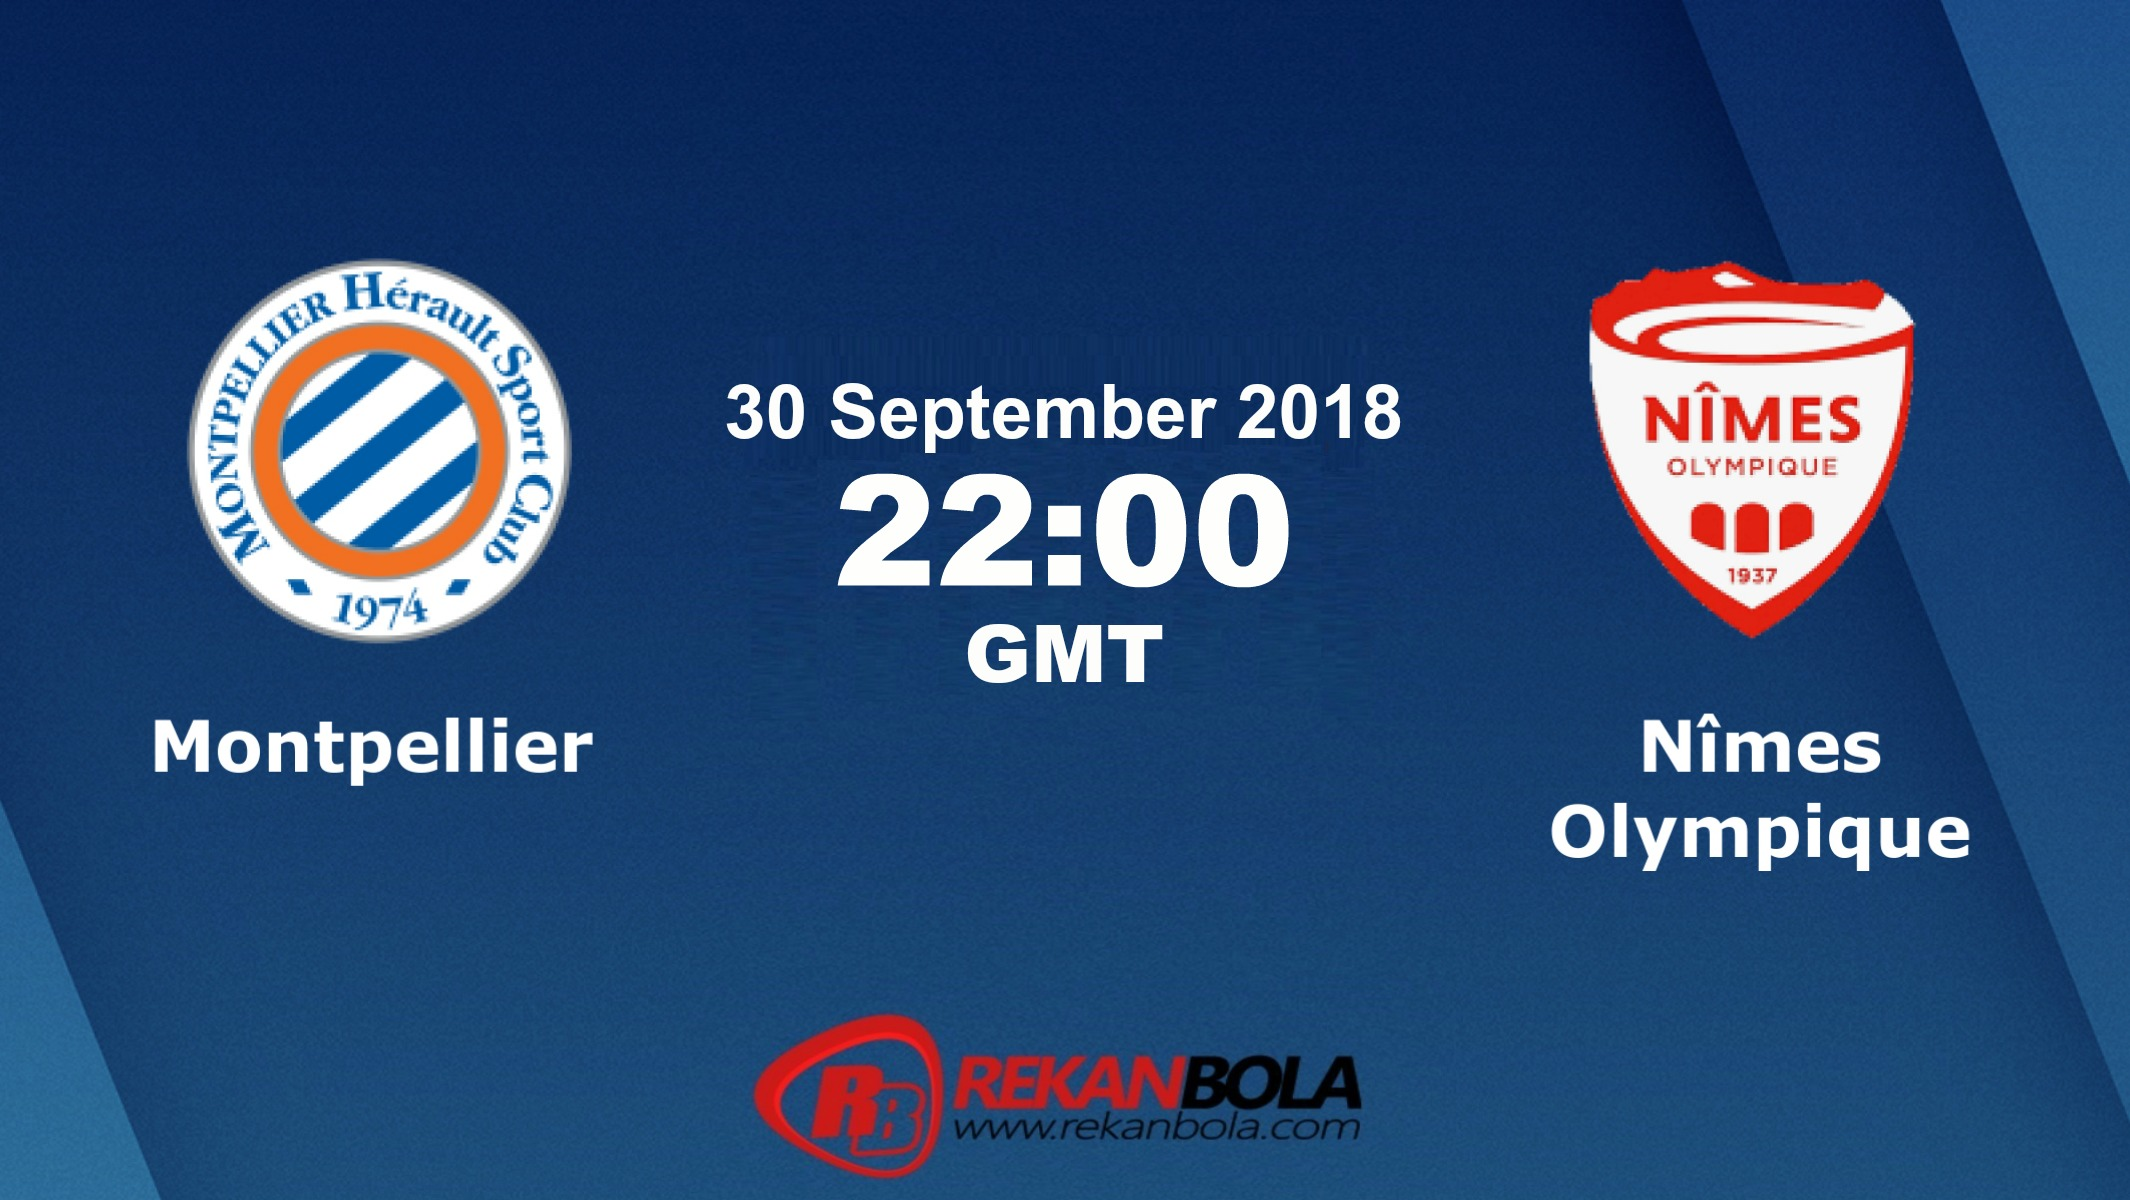 Nonton Siaran Live Streaming Montpellier Vs Nîmes 30 September 2018